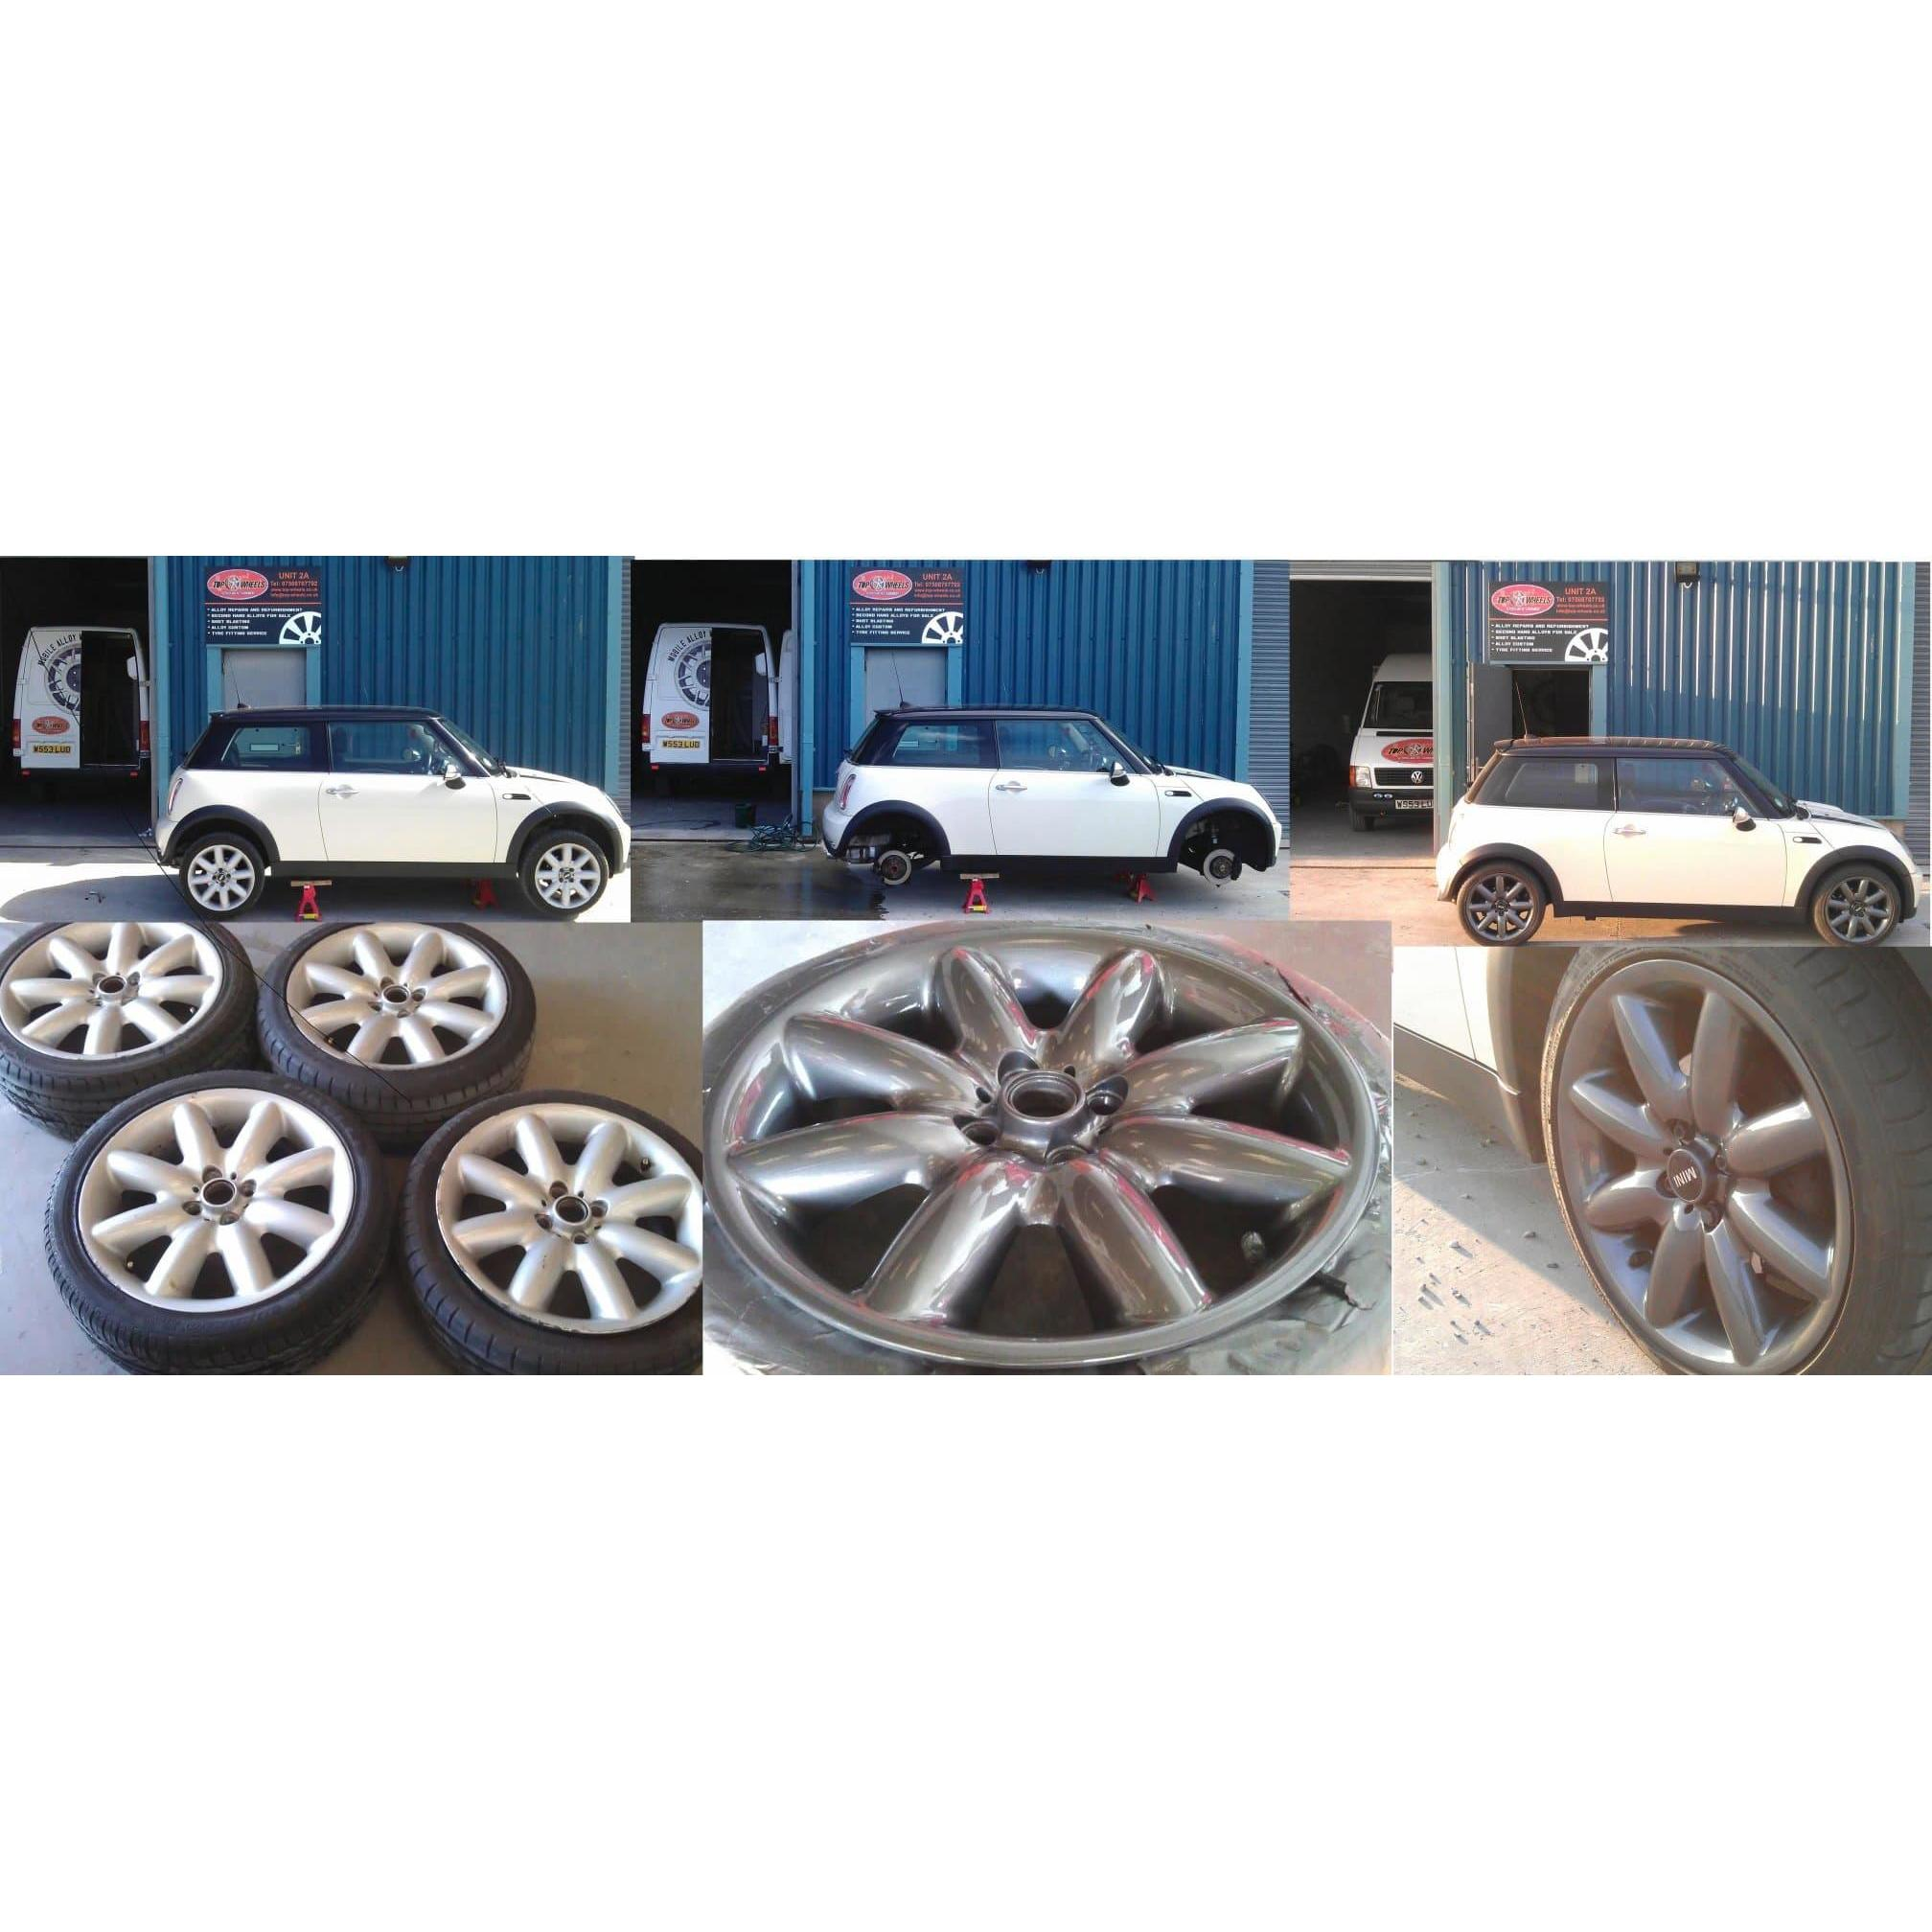 Top Wheels Mobile Alloy Wheel Repairs & Refurbishment - Morecambe, Lancashire LA3 3EN - 07508 707792 | ShowMeLocal.com